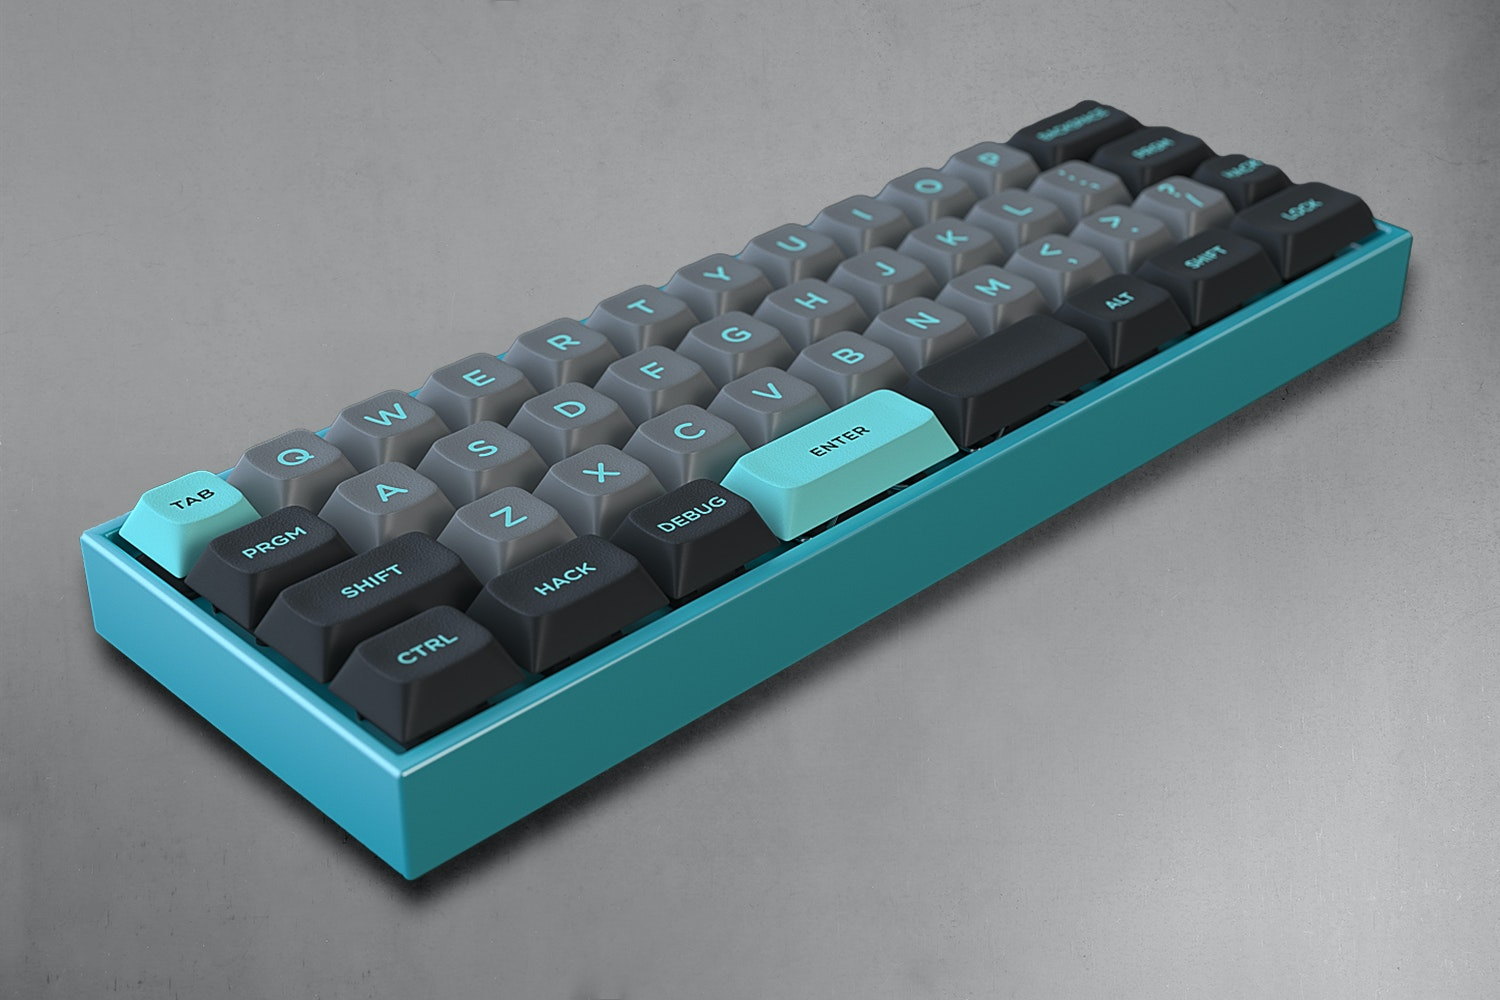 LightCycle DSA Custom Keycap Set for the MiniVan